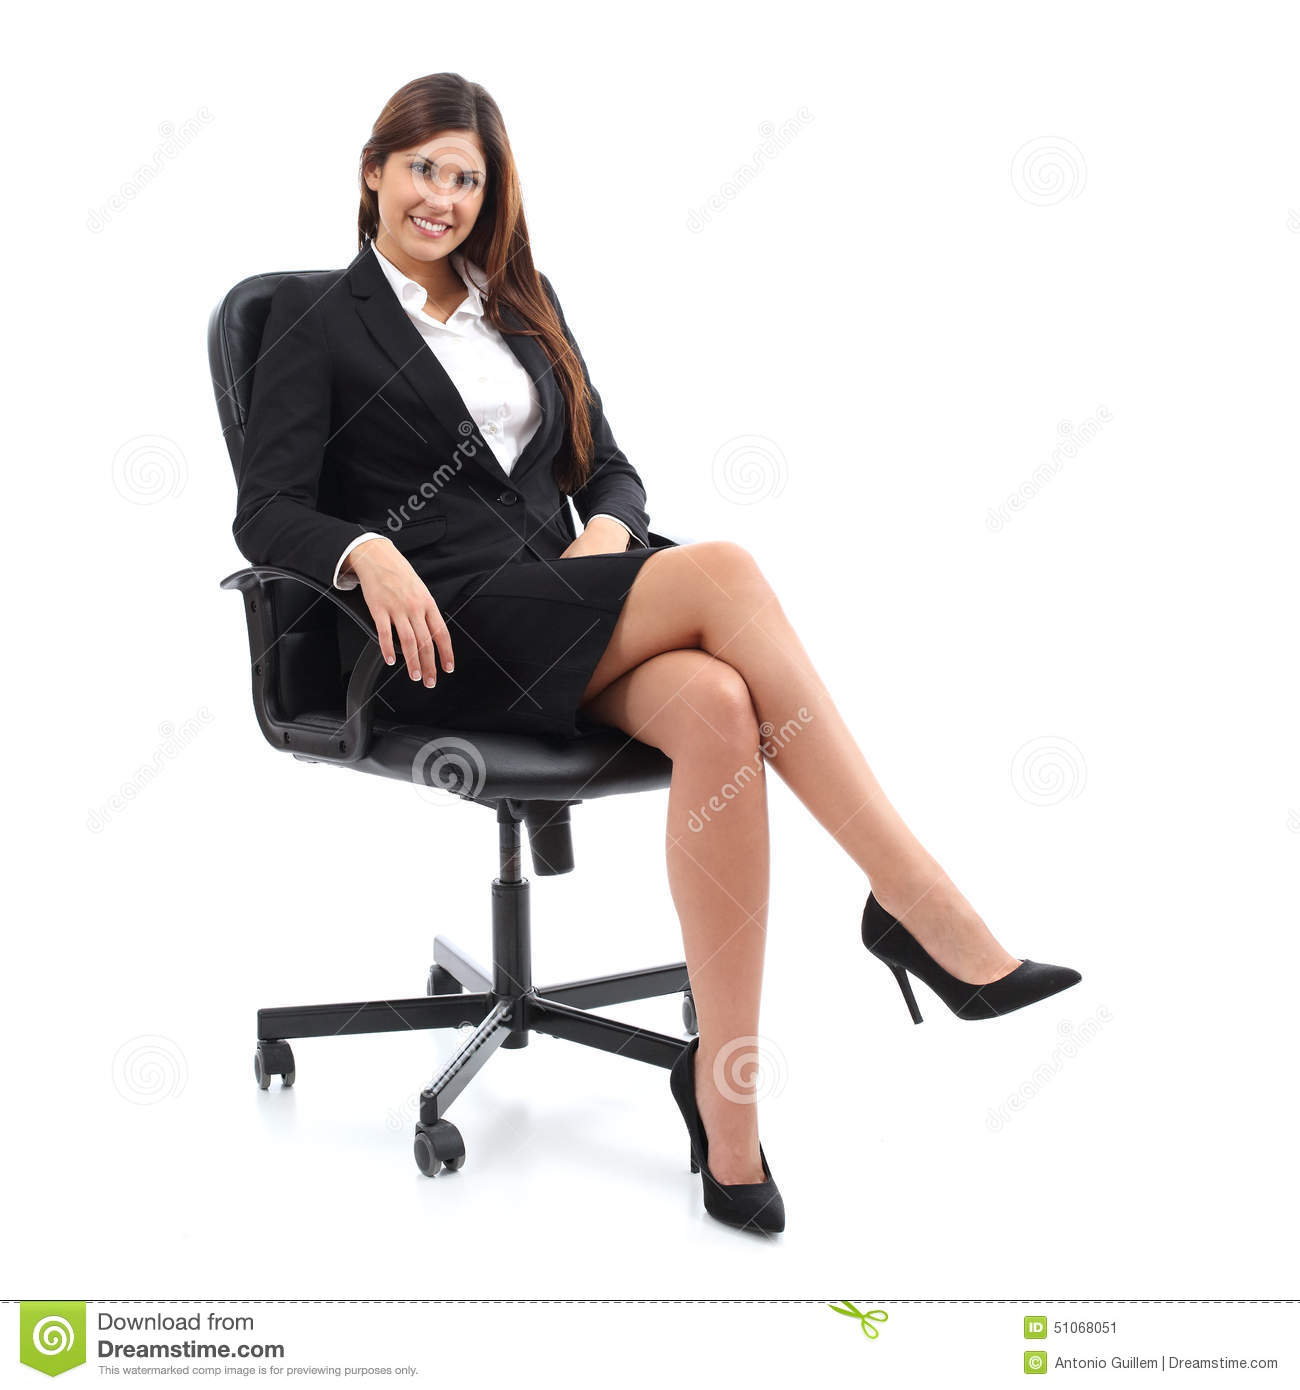 Executive Business Woman Sitting On A Chair Stock Image